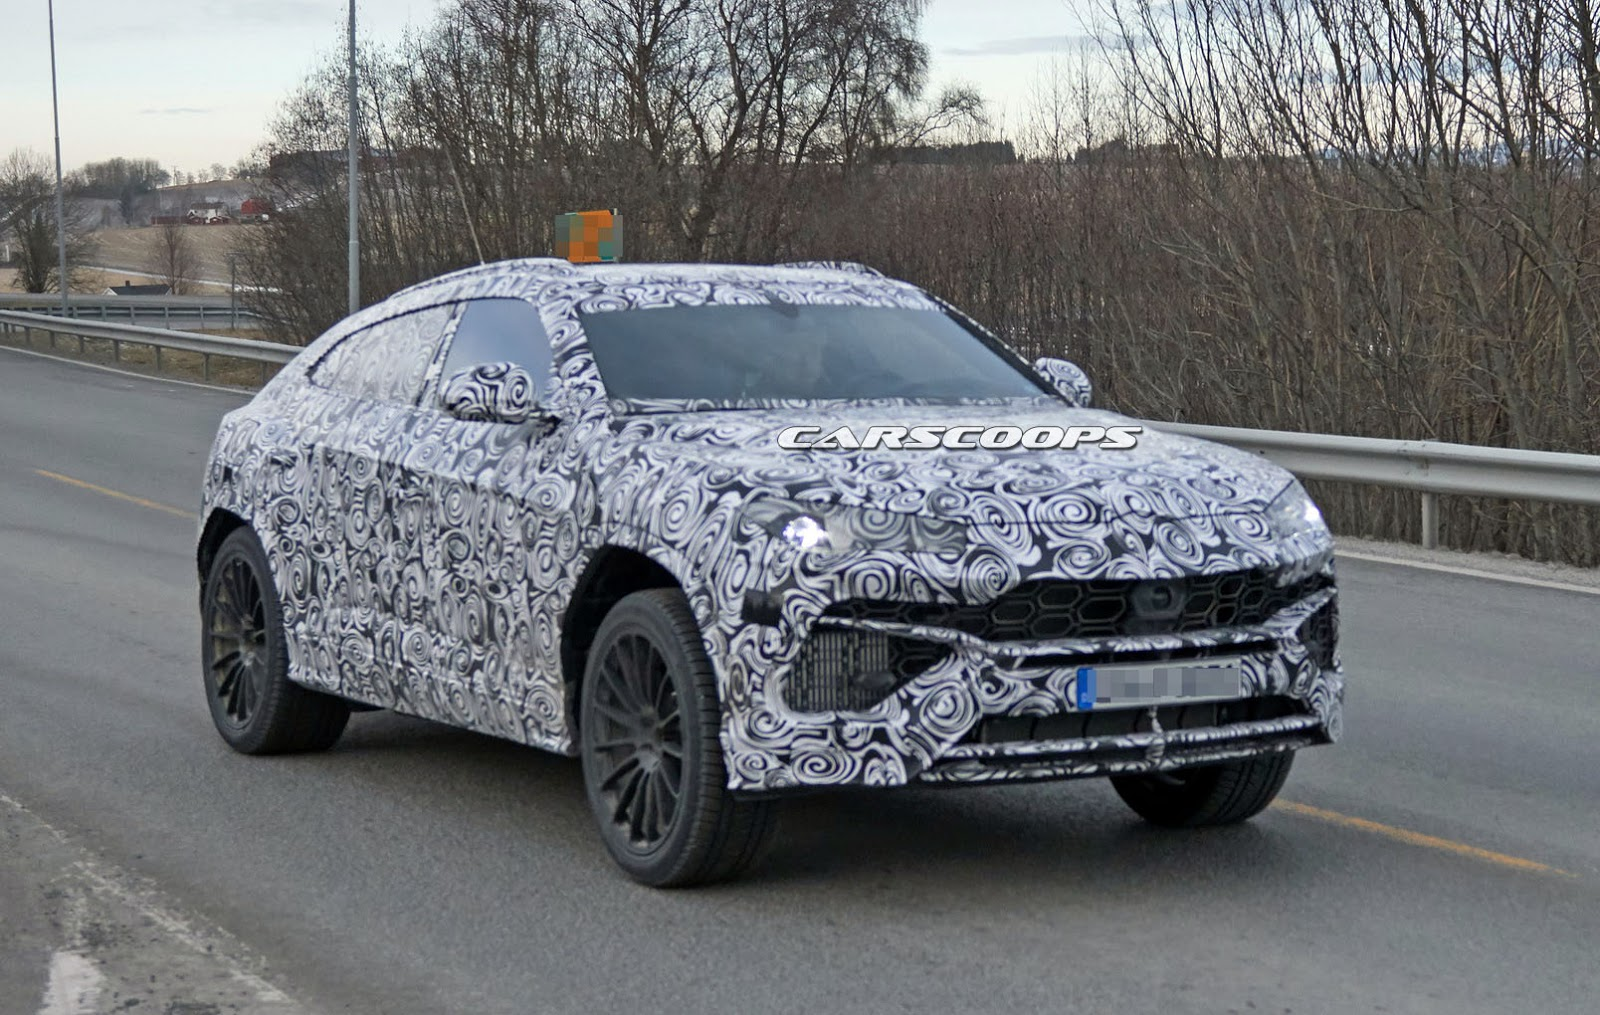 Lamborghini Car 2017 Model >> 2018 Lamborghini Urus SUV Spied In Production Trim, Stays True To Concept | Carscoops